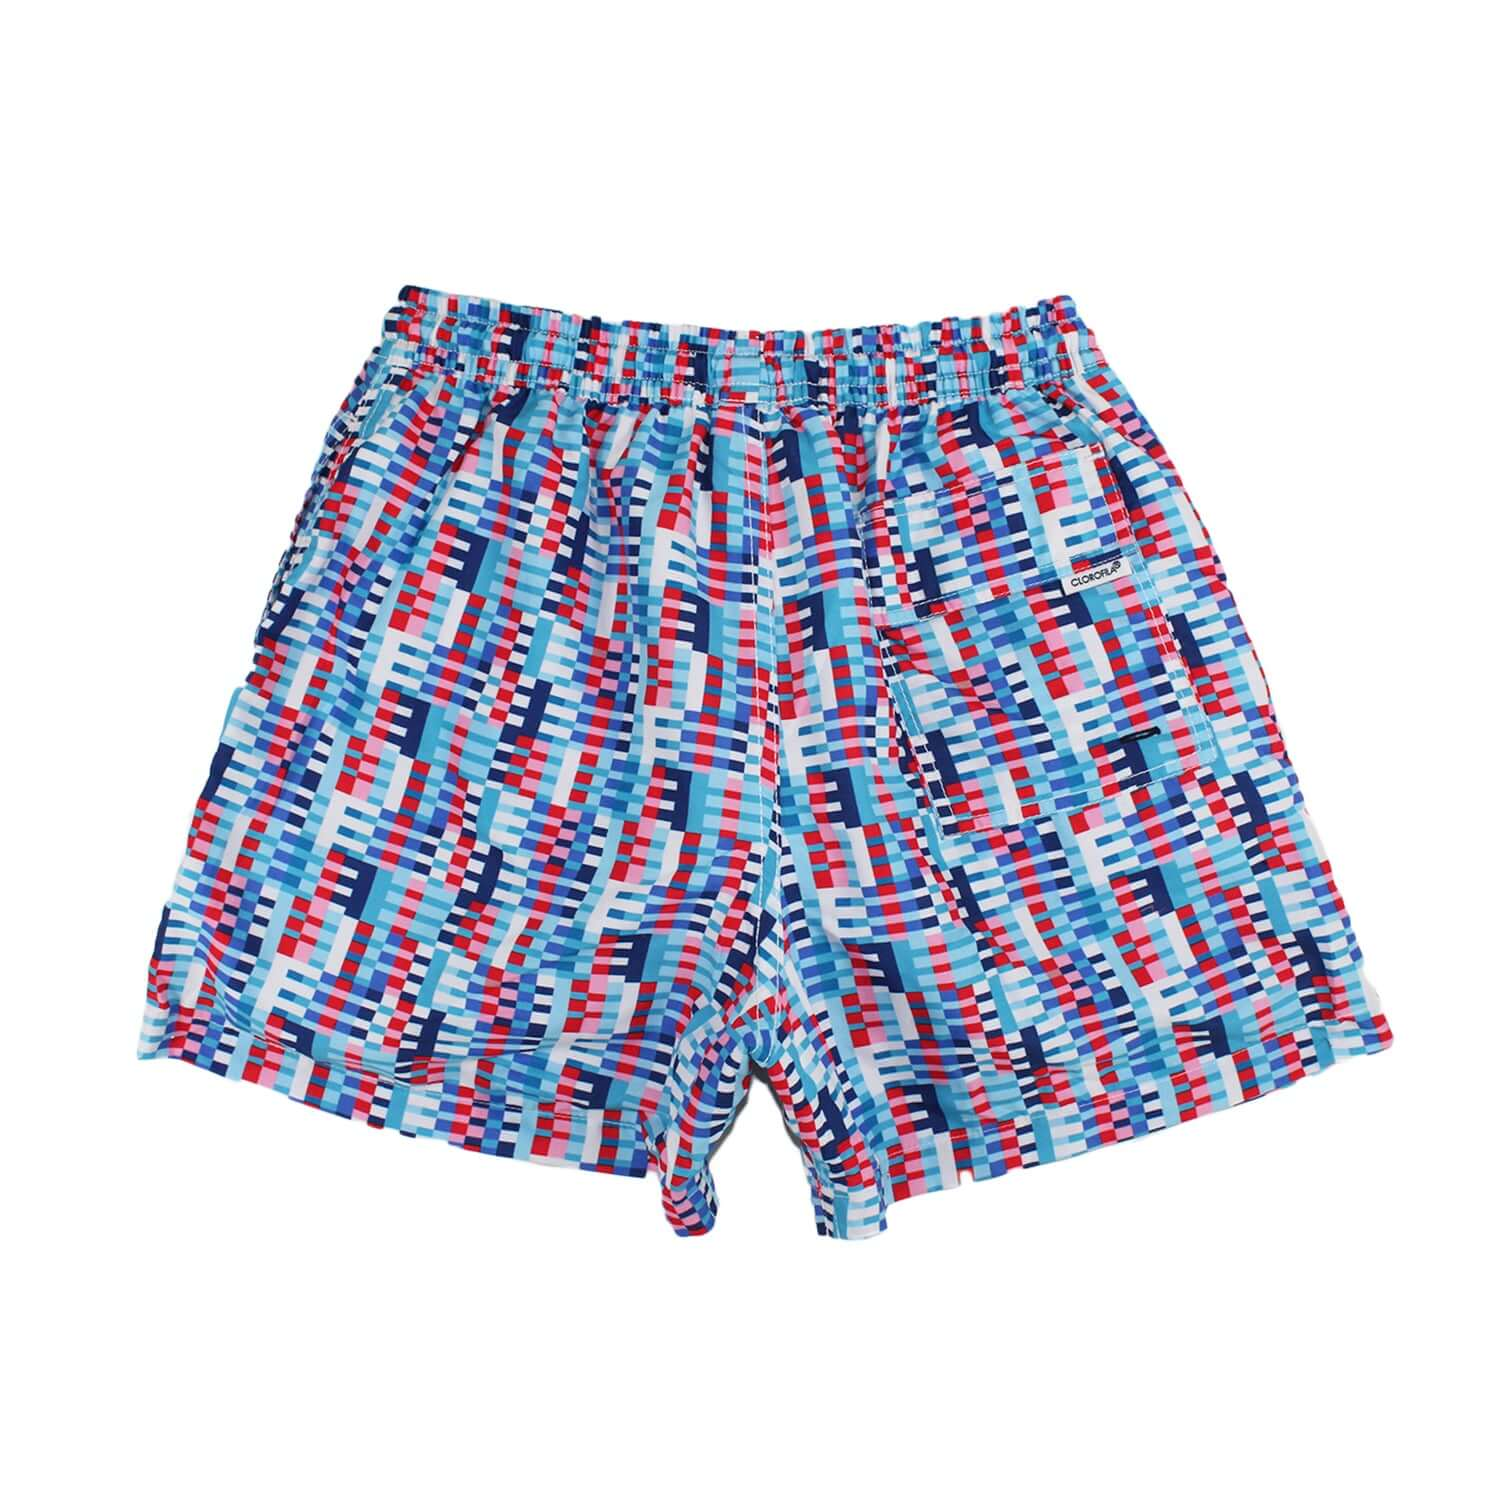 SQUARES BLUE/RED - Clorofila Sea Wear